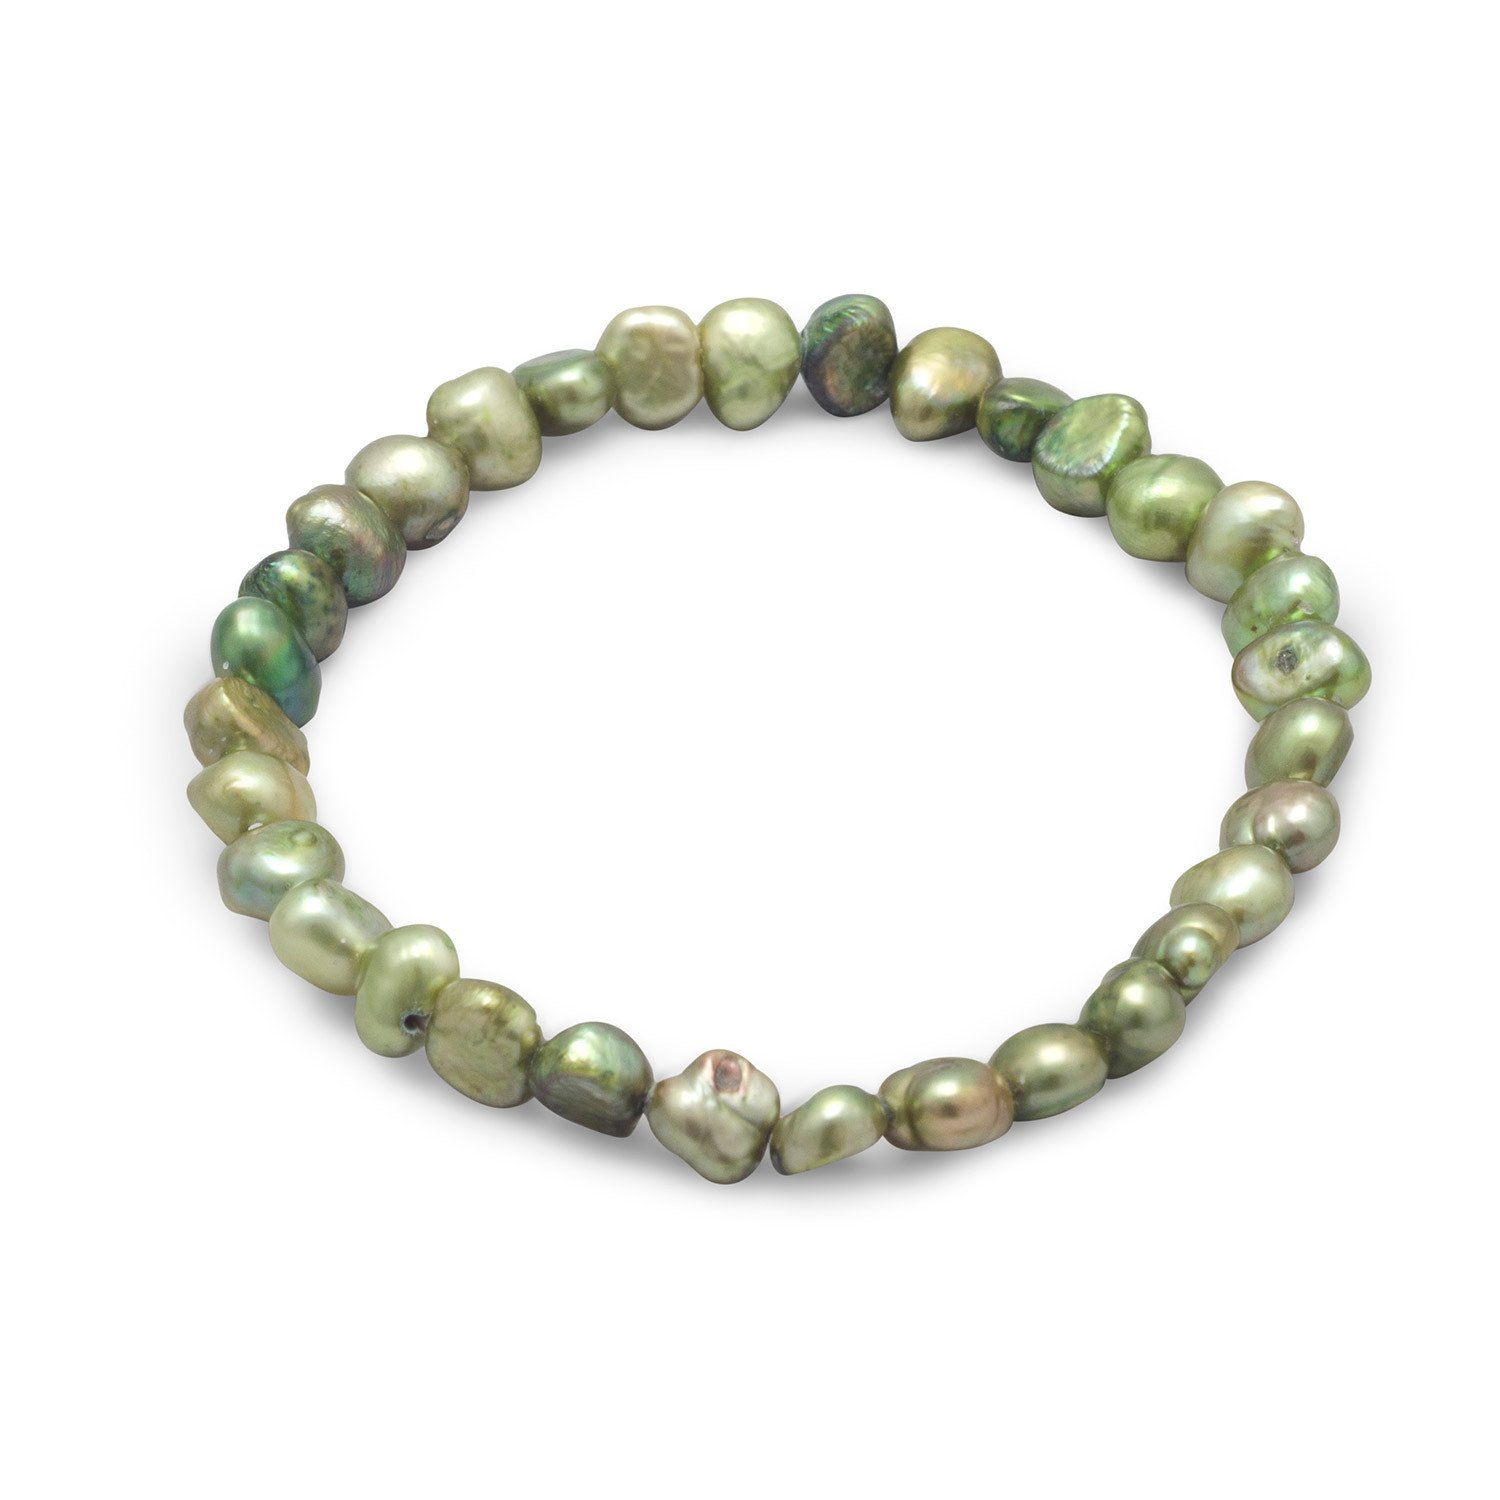 Green Cultured Freshwater Pearl Stretch Bracelet